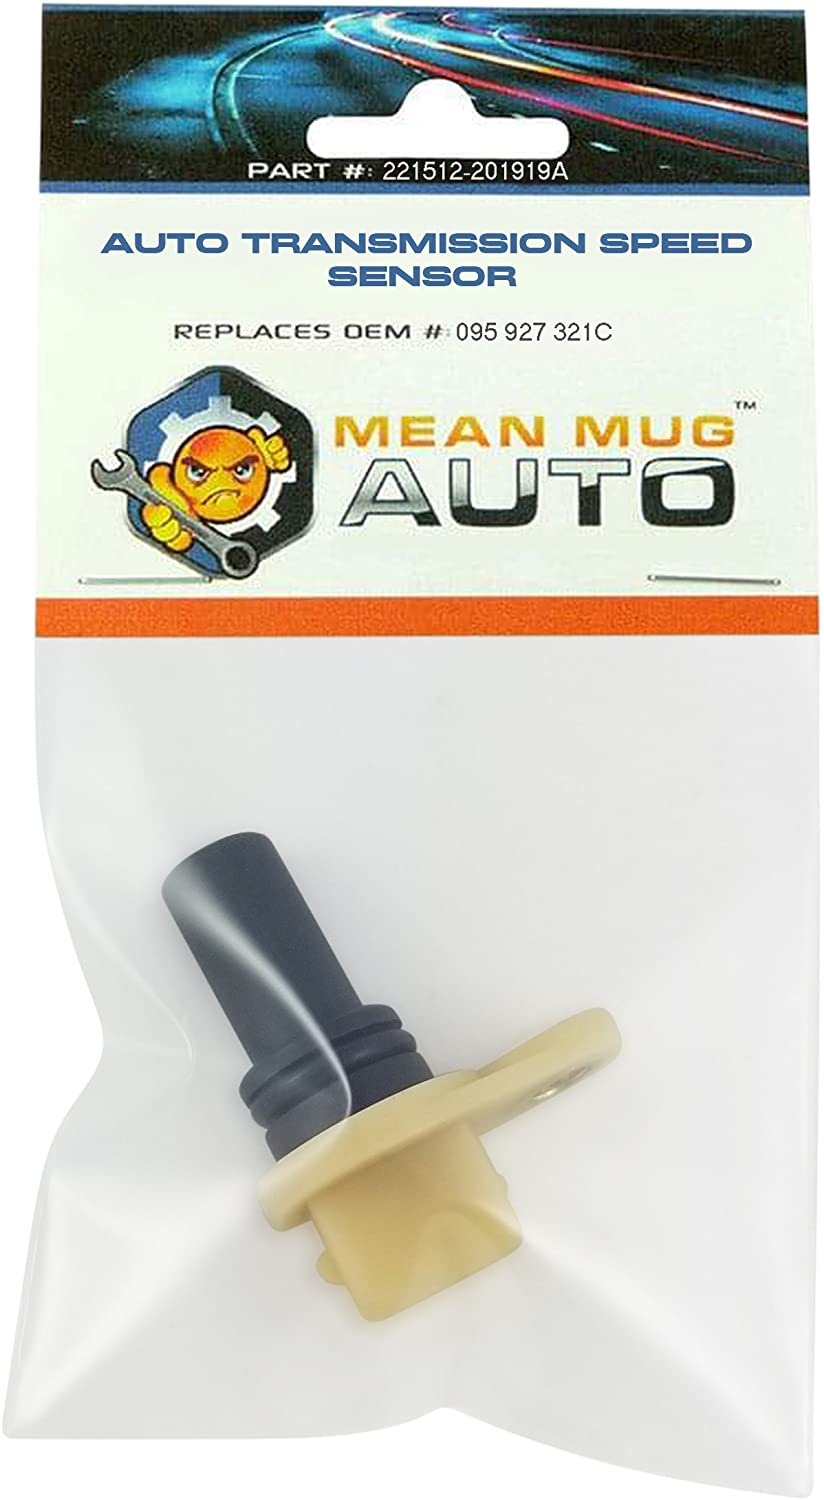 Mean Mug Auto 221512-201919A Auto Transmission Speed Sensor - Compatible with Vehicles & More - Replaces OEM #: 095-927-321C